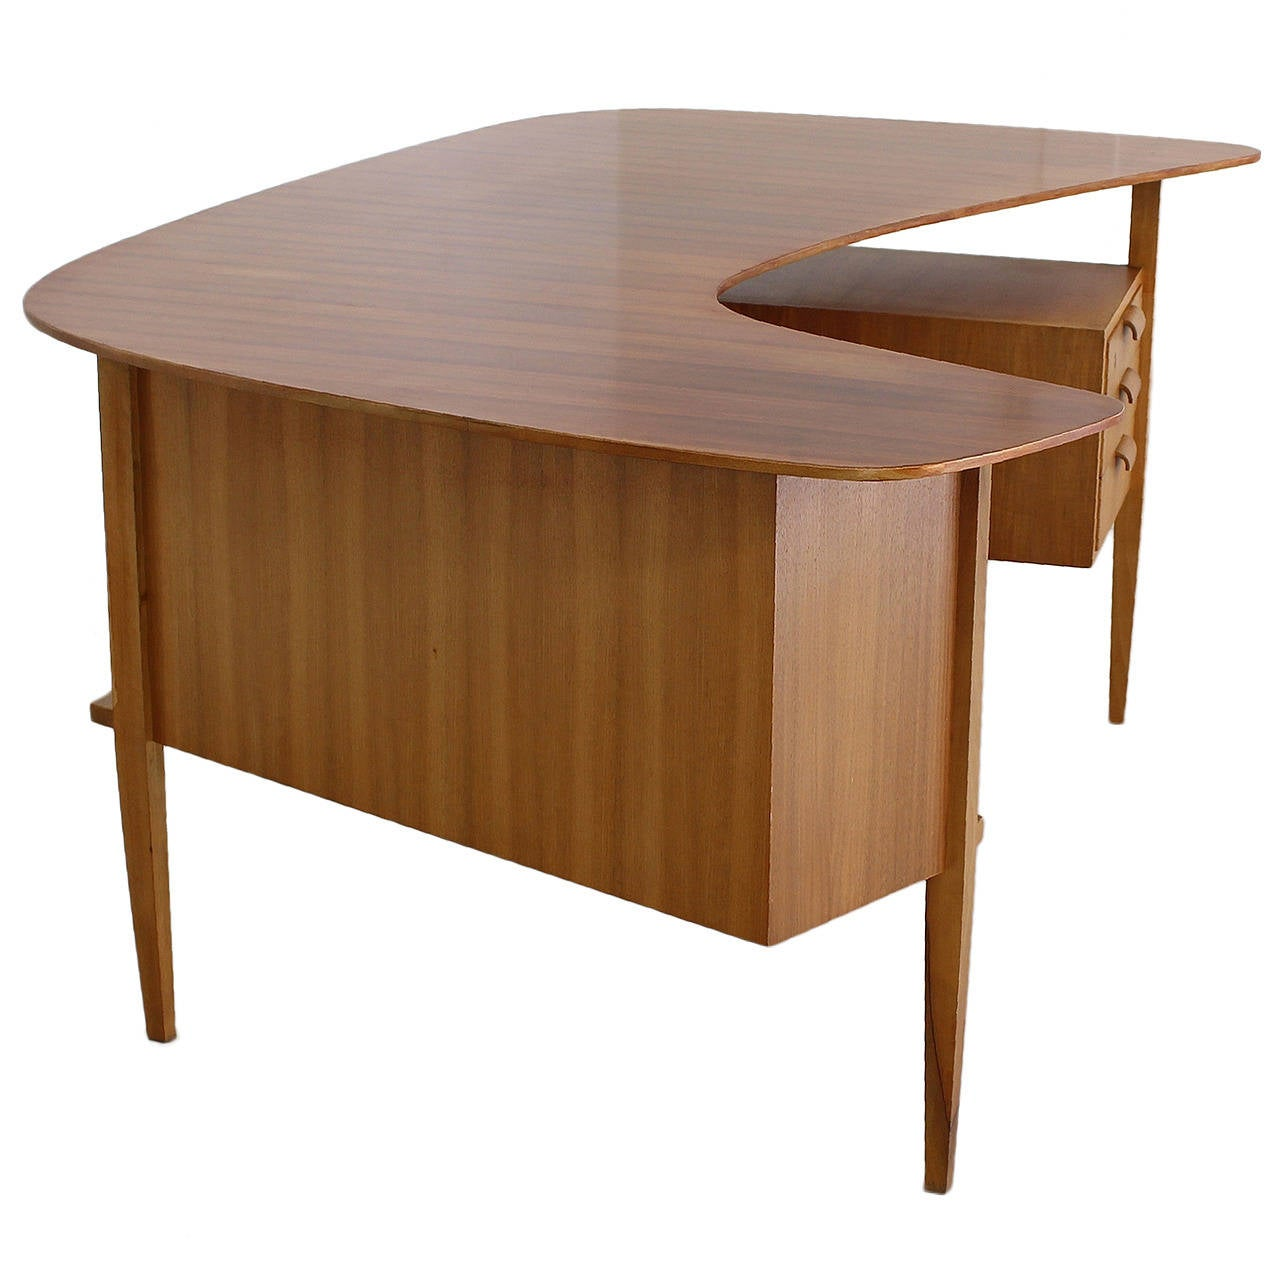 custom standing desk kidney shaped mid. 1950s german design kidney shaped large desk by hans hartl 1 custom standing mid p